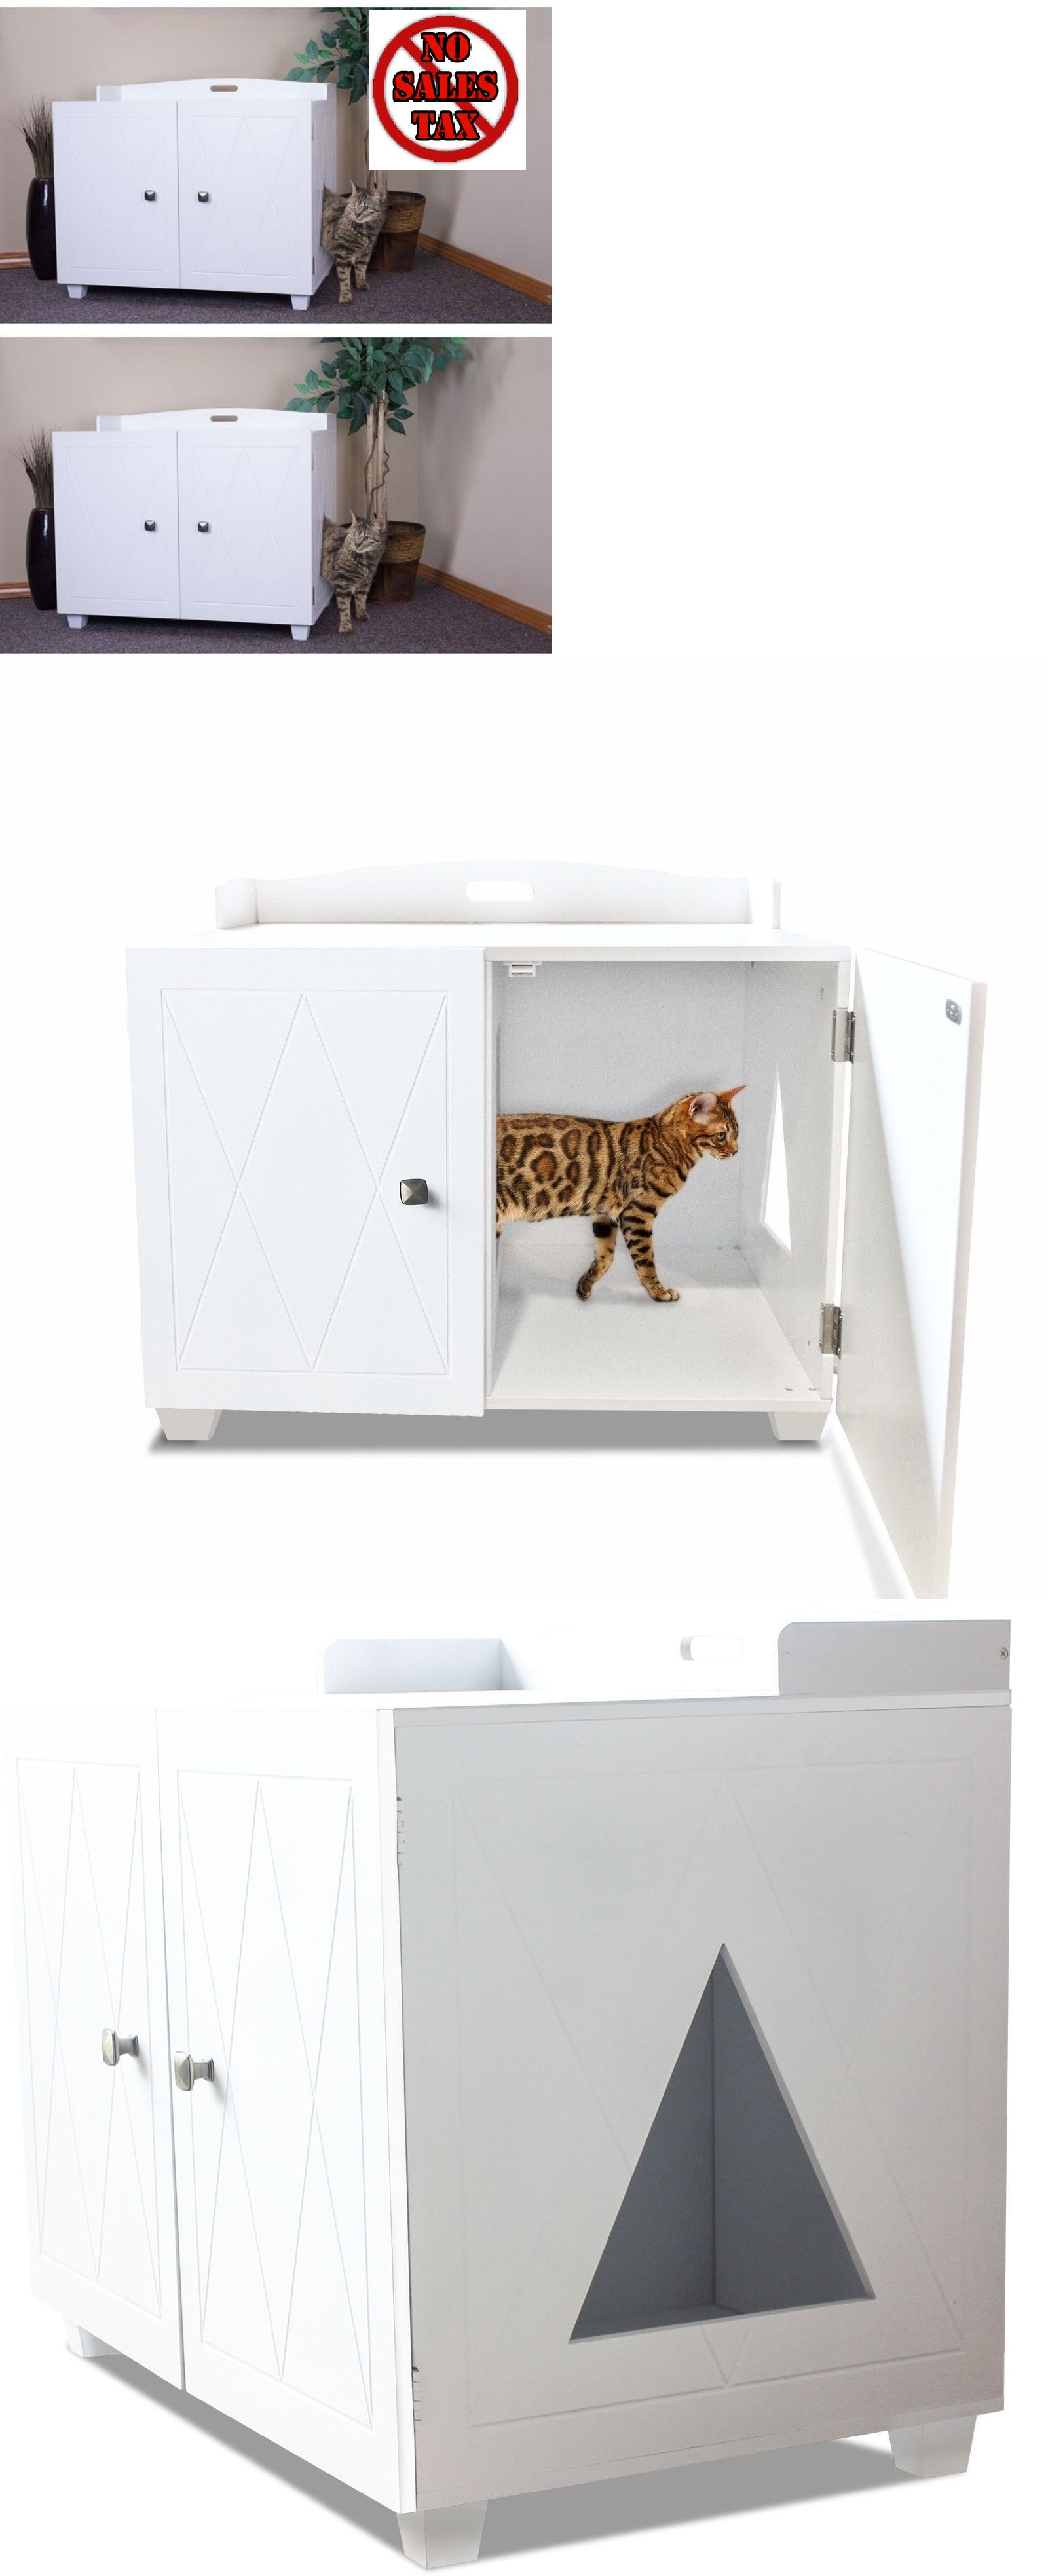 litter box furniture cat enclosed covered. animals cats enclosed litter box furniture cat kitty pet large hidden enclosure covered wood